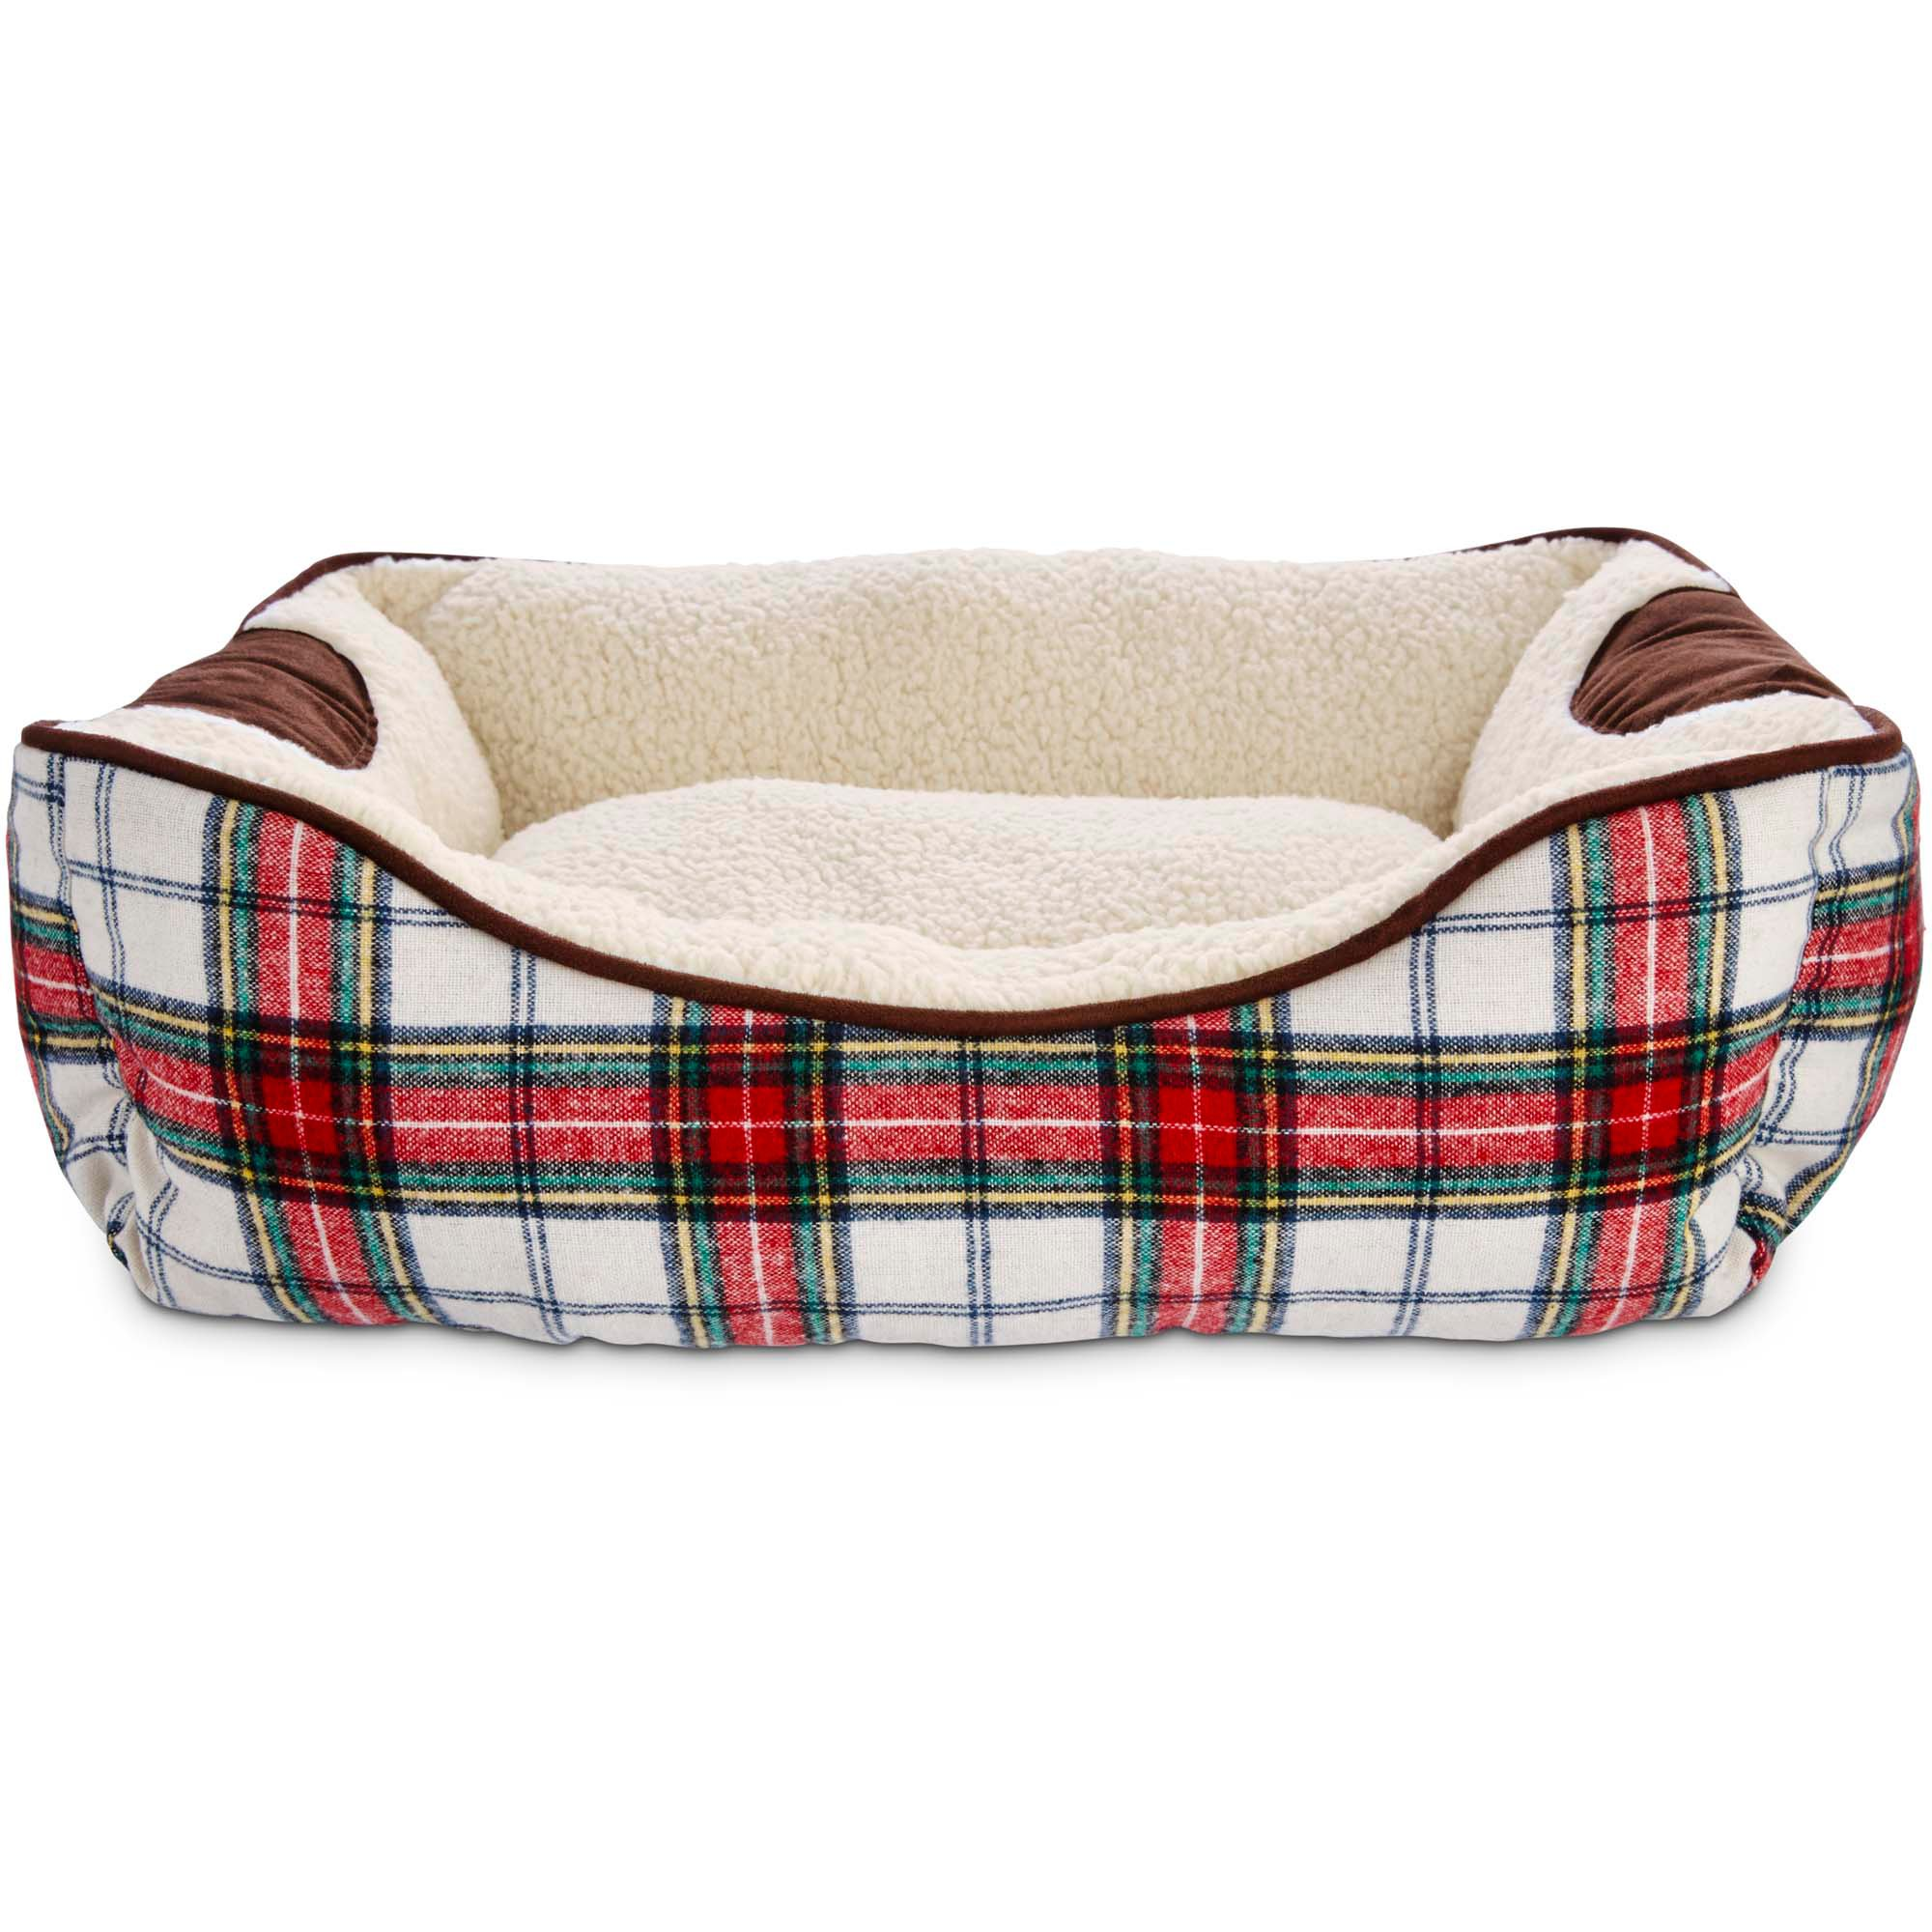 heritage collection red and green plaid dog bed | petco